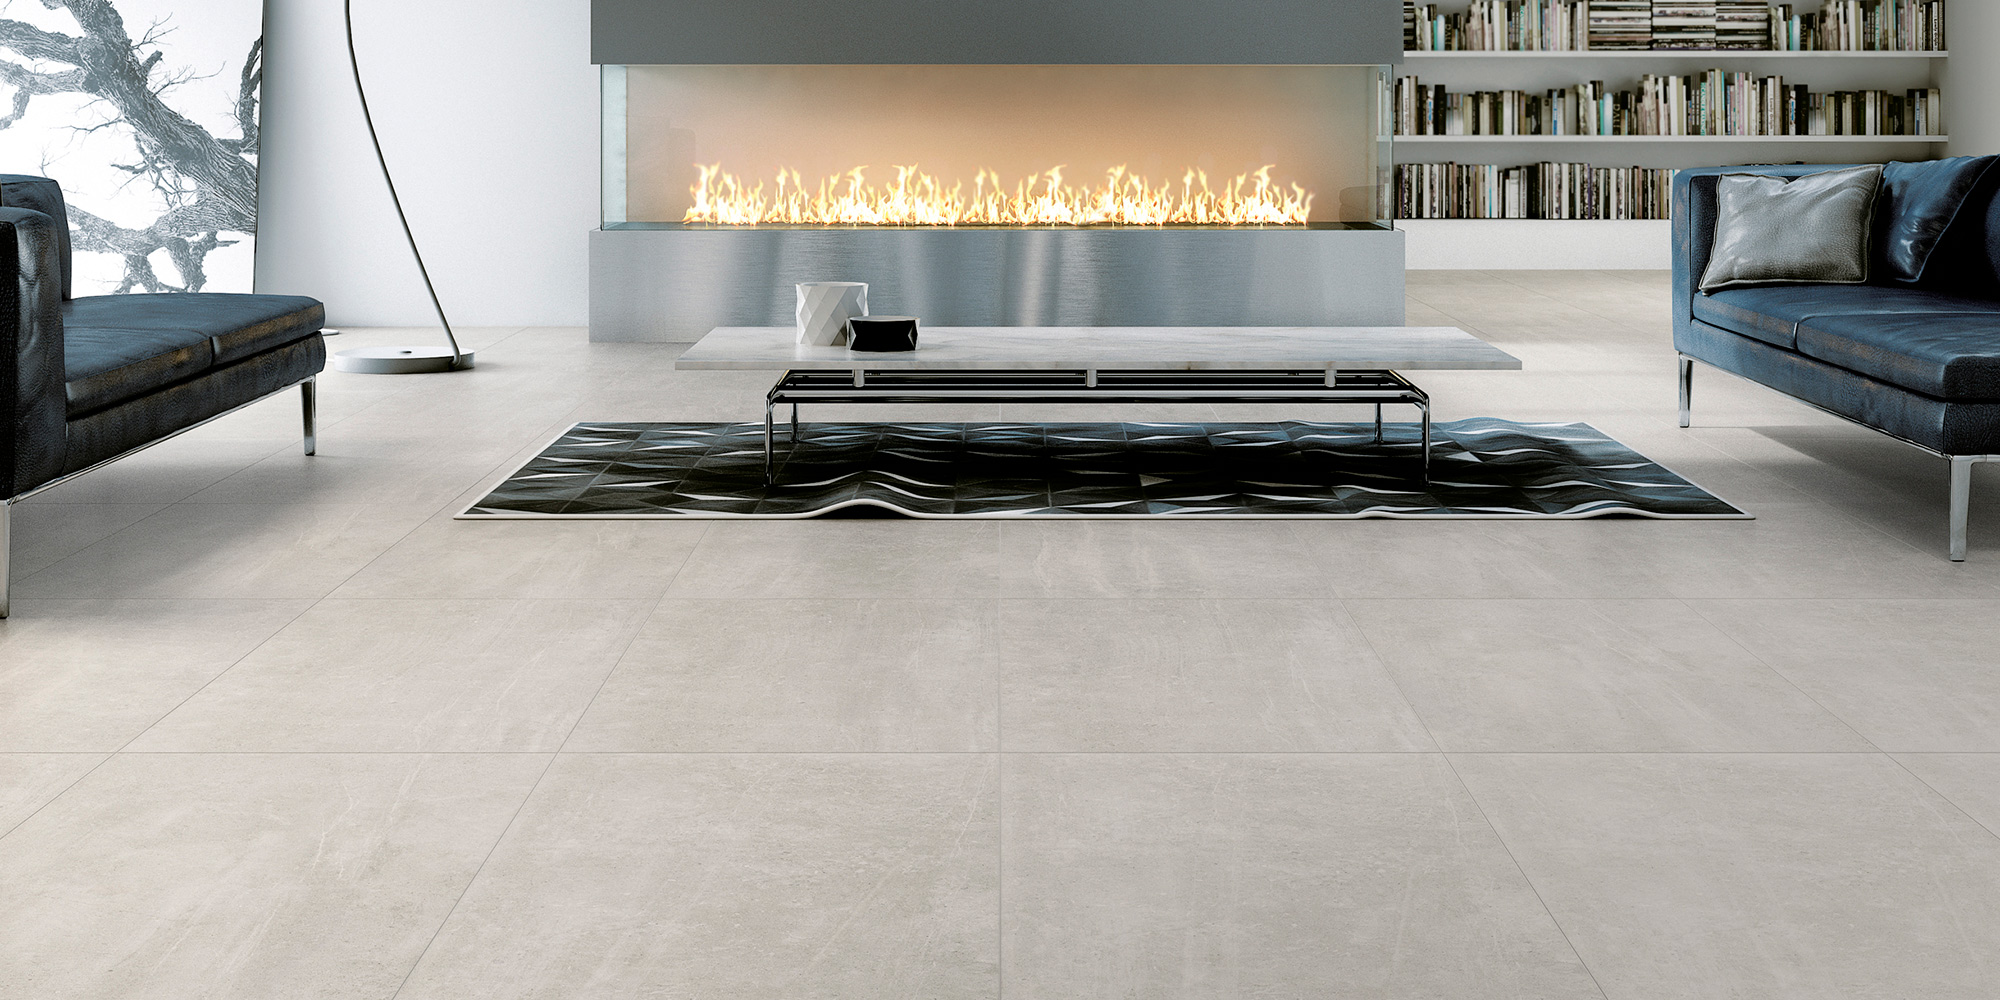 Uptown 45x90 / 60x60. Concrete look porcelain tiles with a high slip rating R10 C.